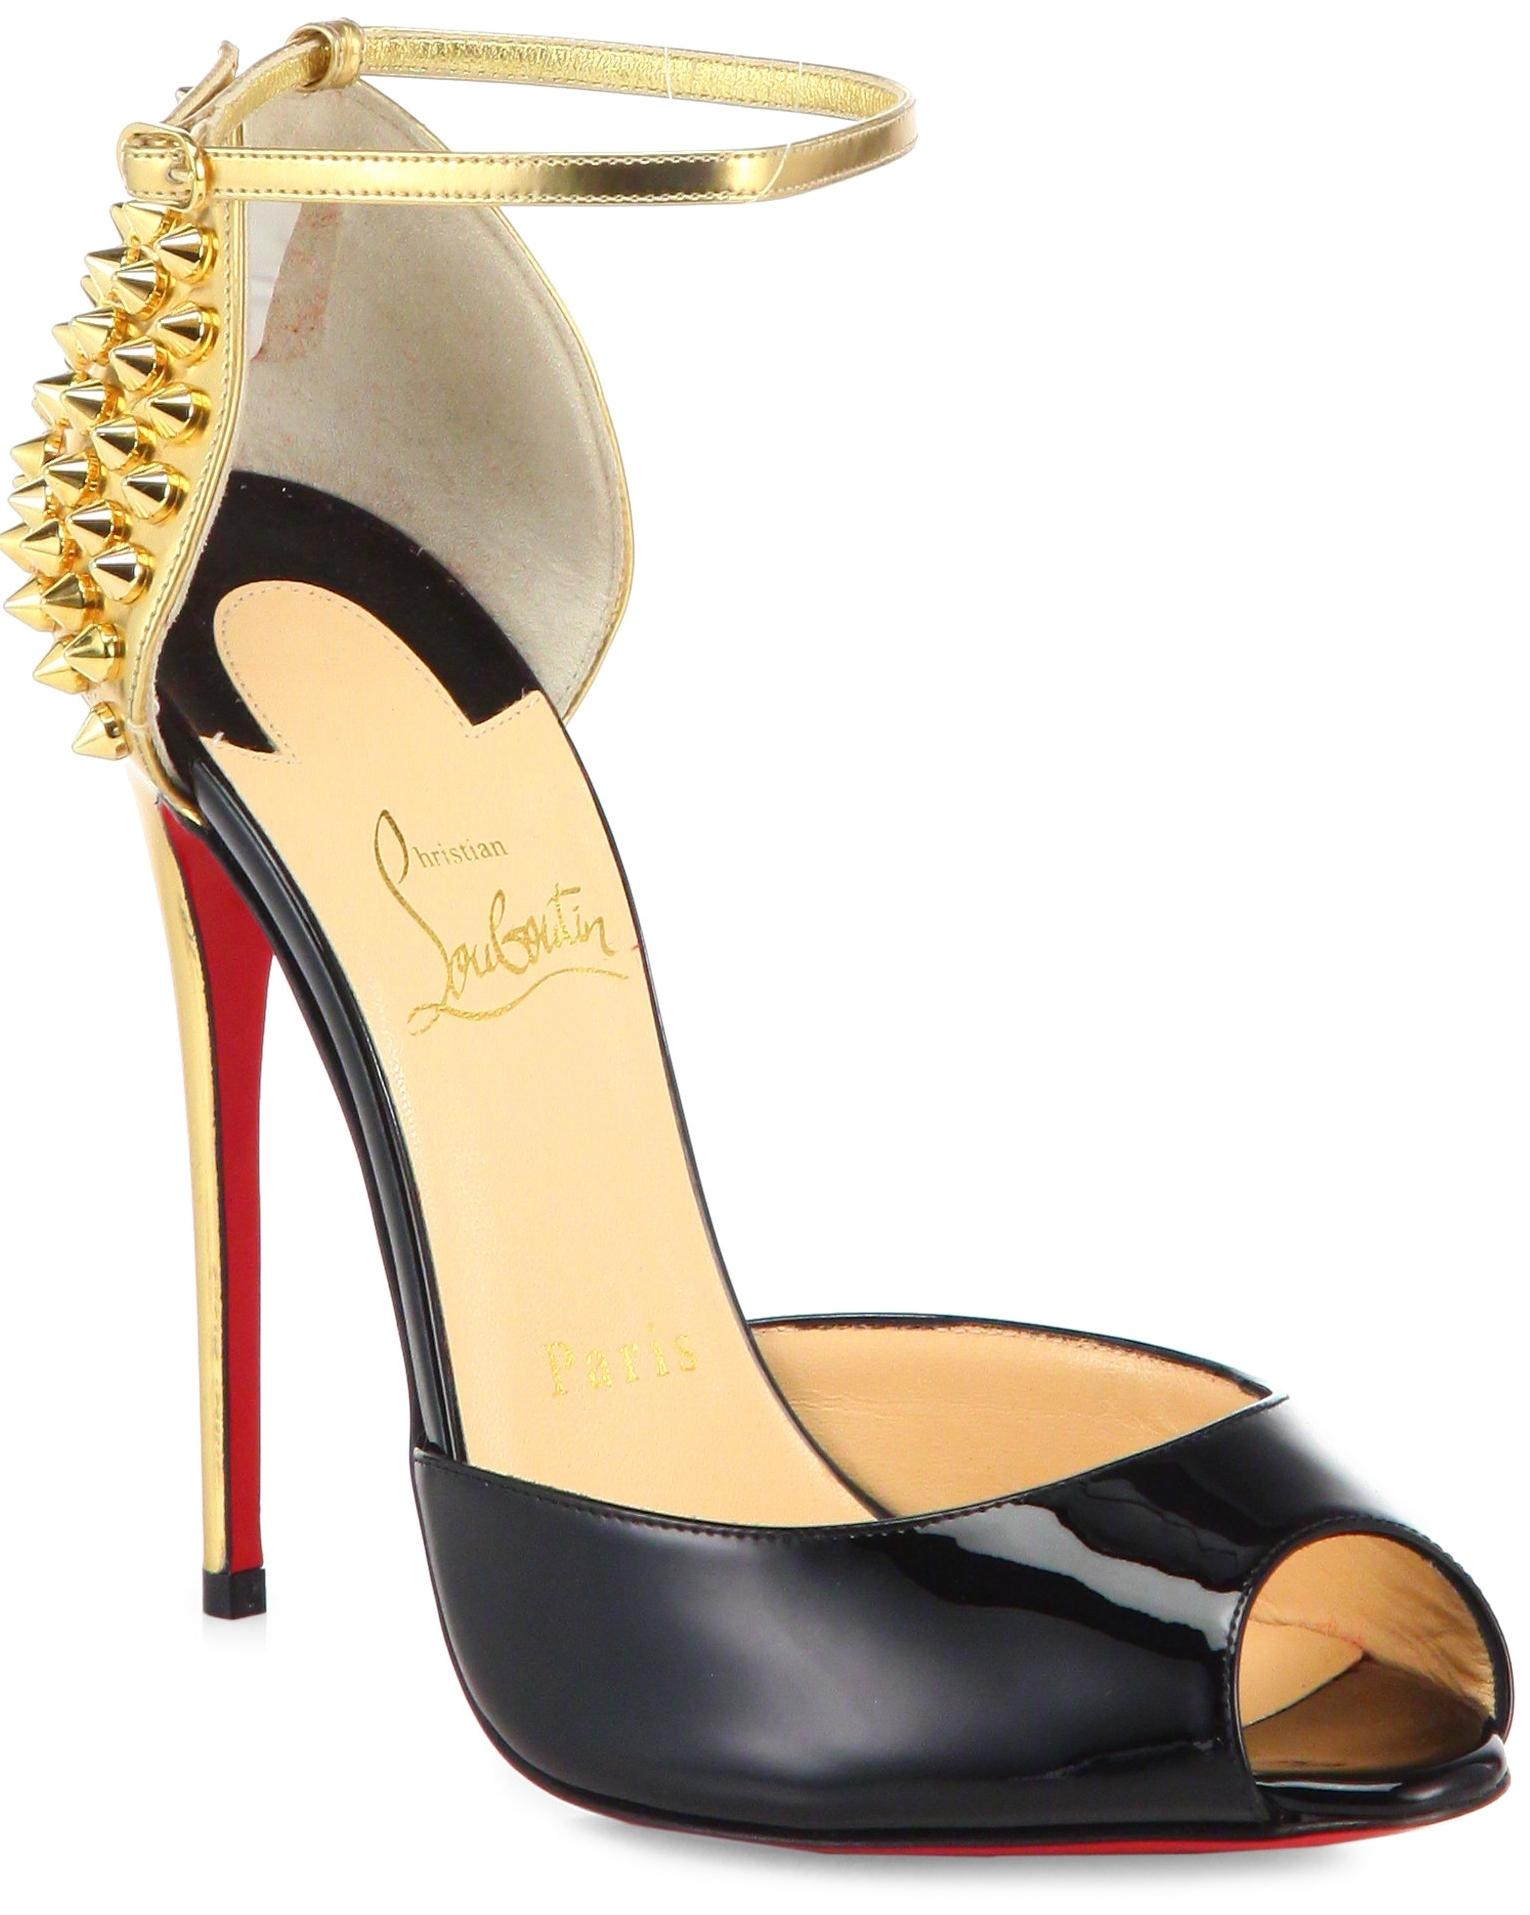 Christian Louboutin Black Gold New Pina Spike Patent Leather Spiked Strappy Sandal 38 Pumps Size US 8